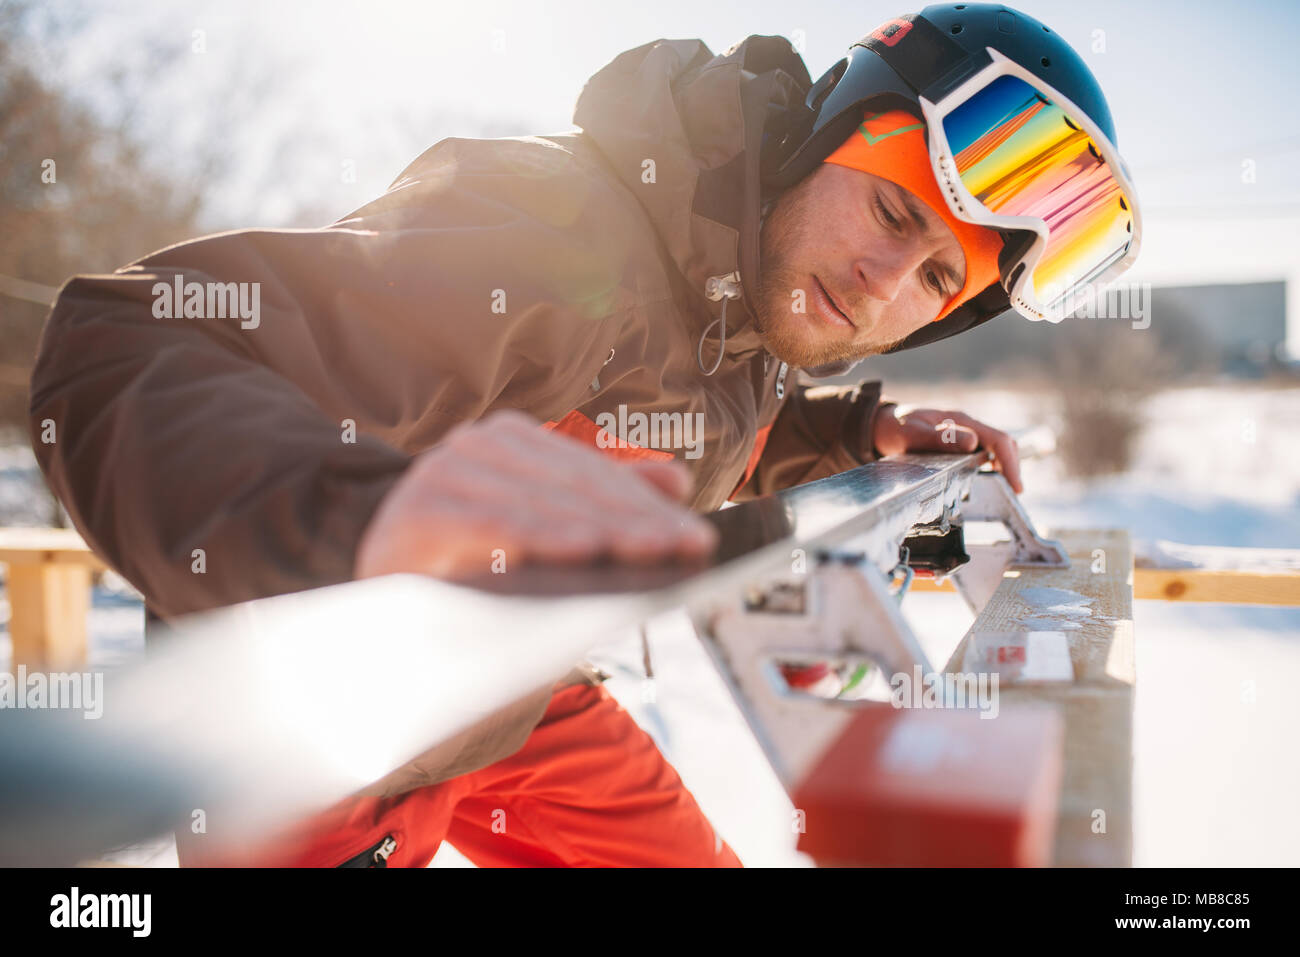 Male skier checks skis before skiing, closeup. Winter active sport, extreme lifestyle. Downhill skiing - Stock Image